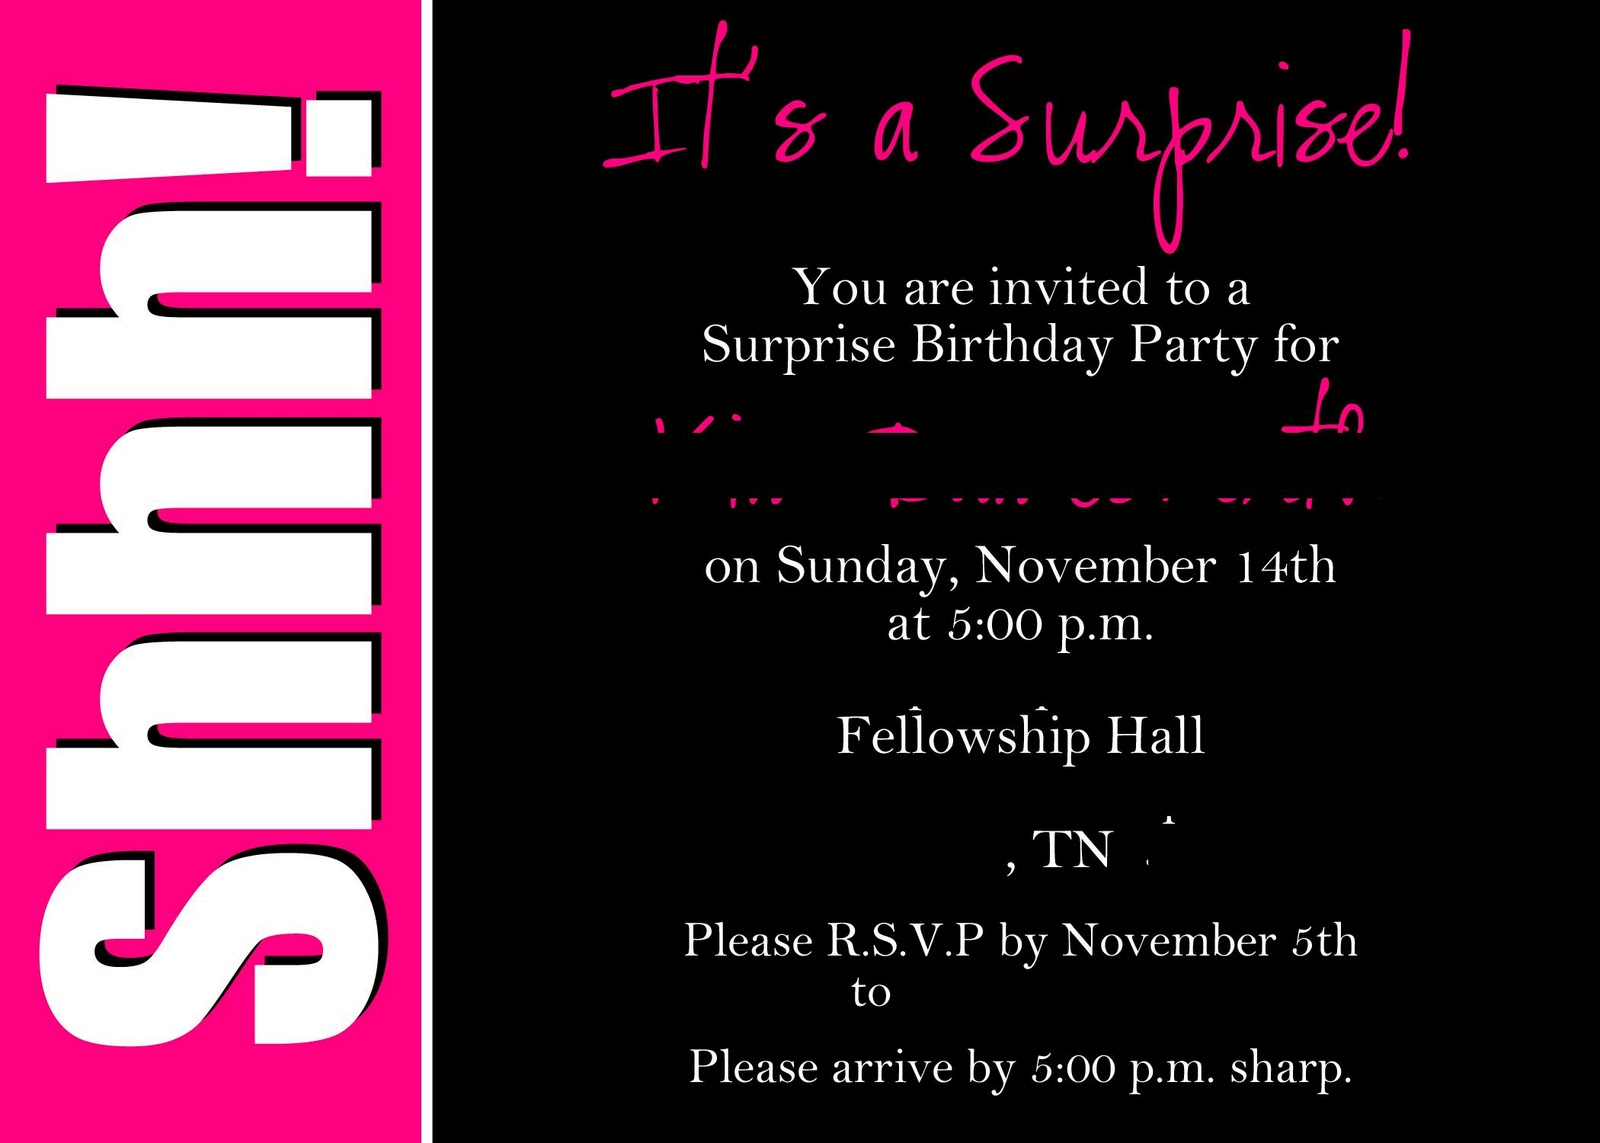 13th birthday party invitations templates free ; wonderful-surprise-birthday-invitation-wording-may-our-charming-Birthday-invitation-help-you-to-decide-your-invitation-card-style-9